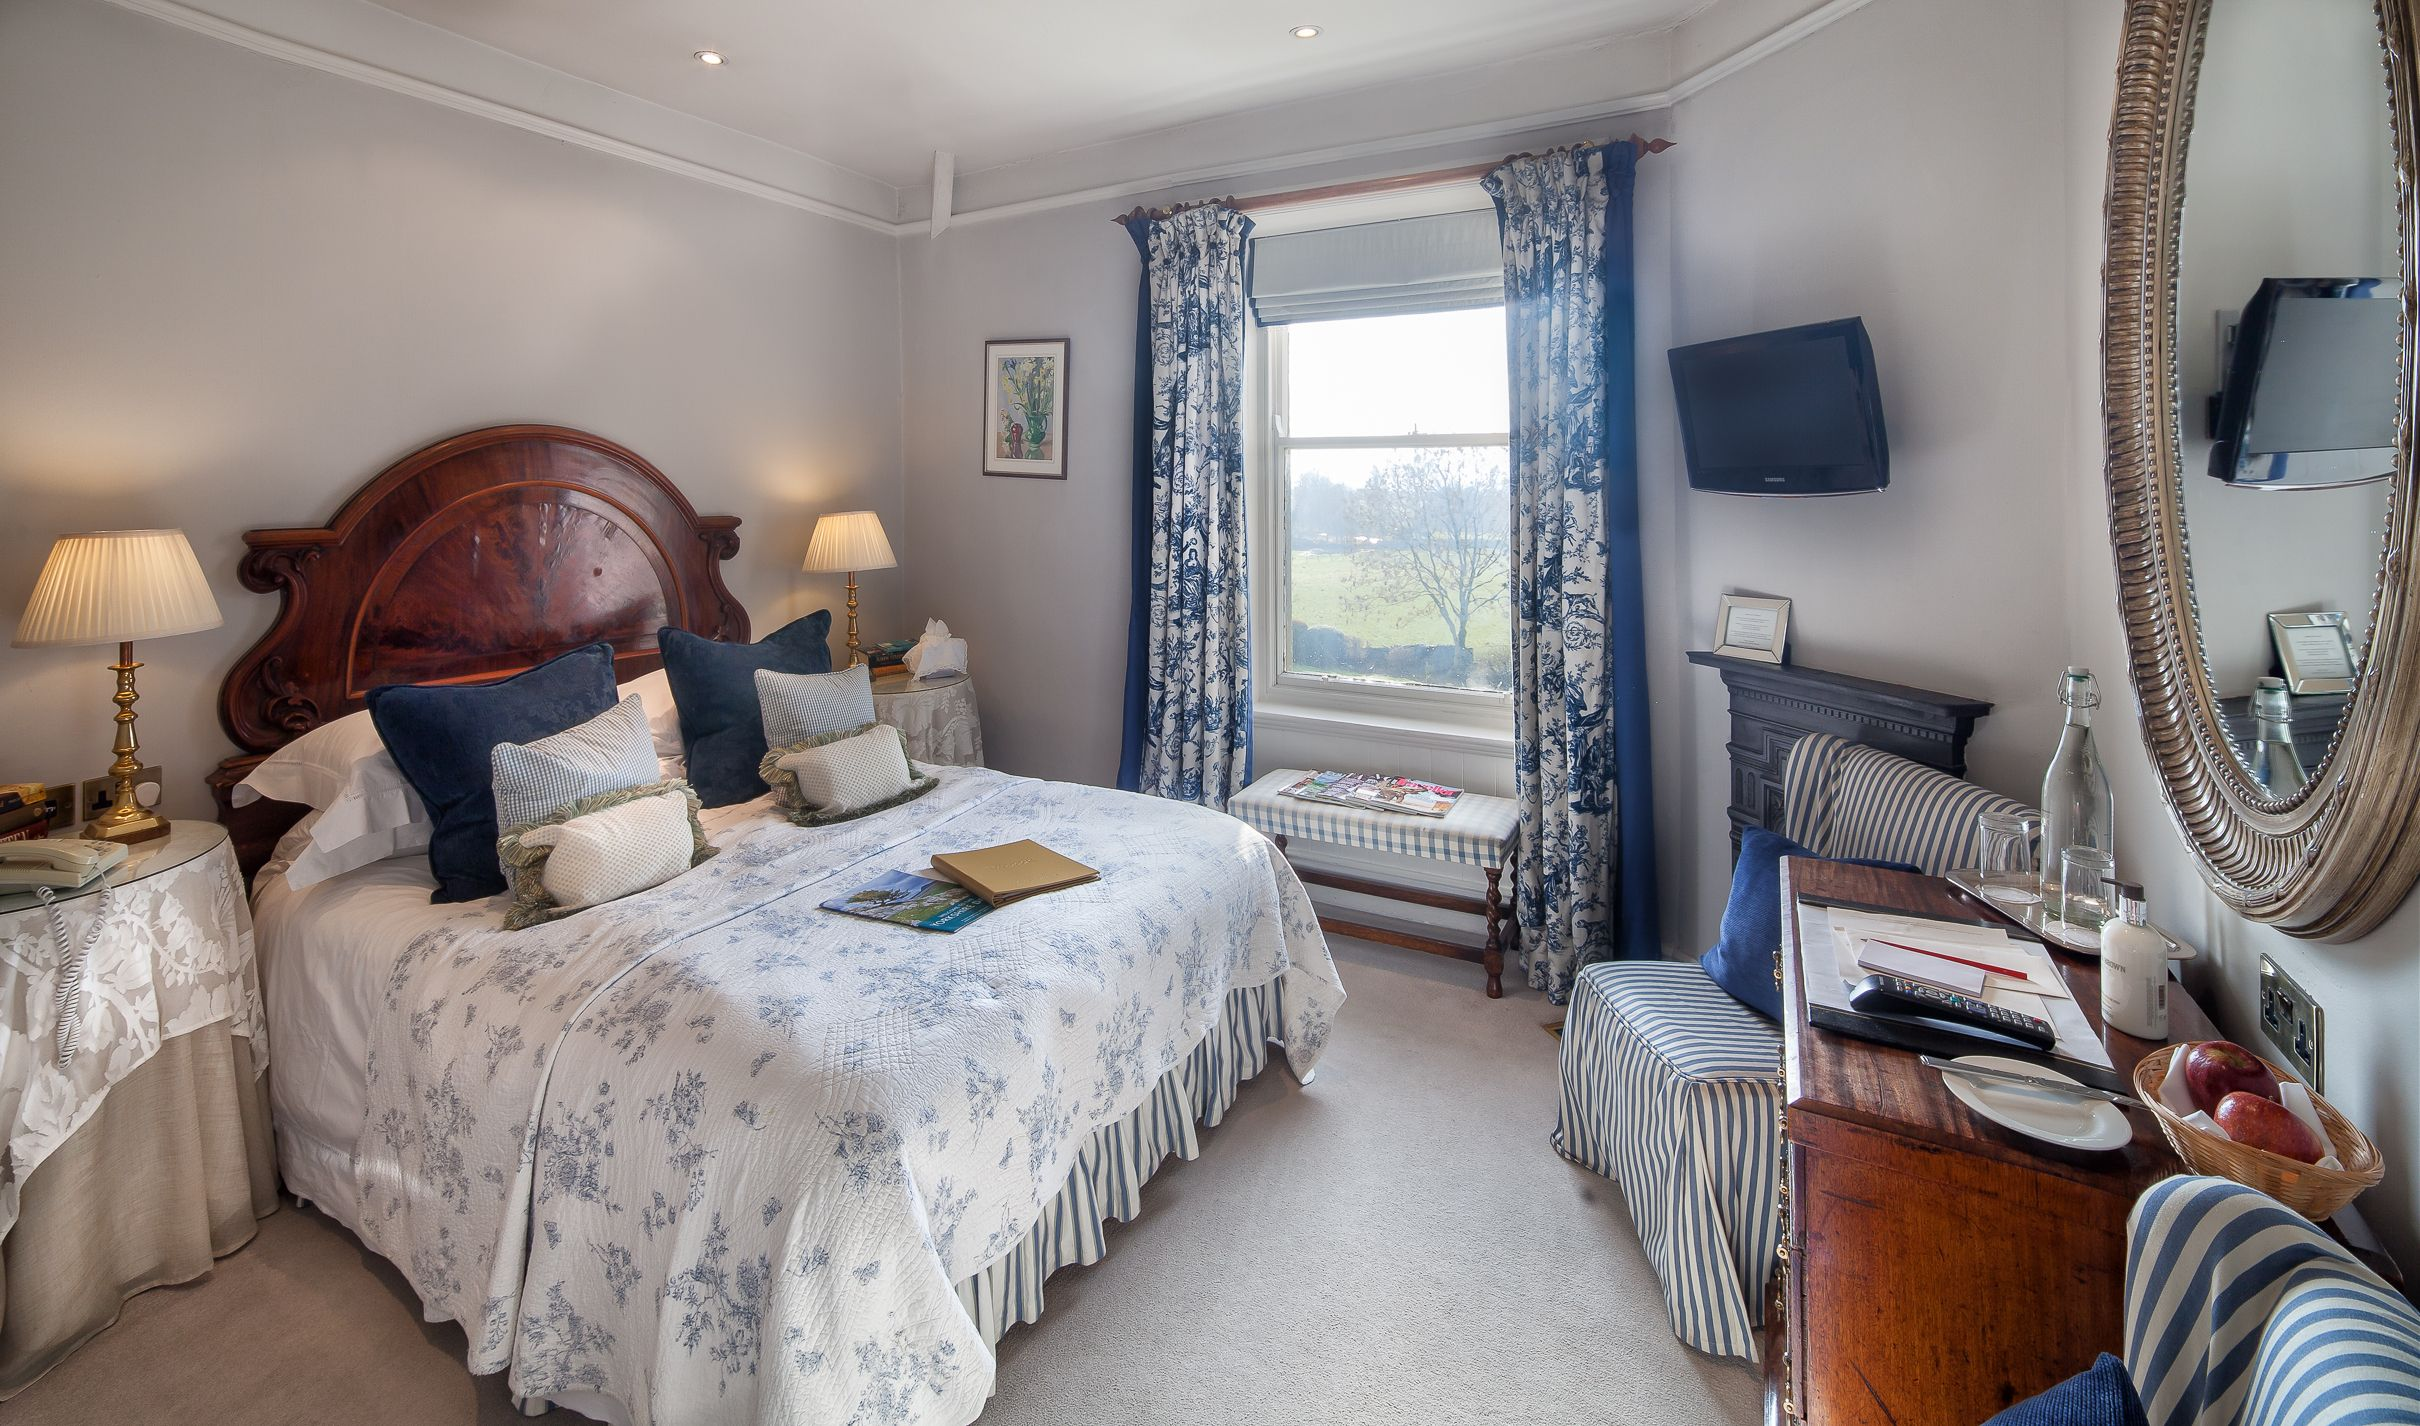 The Traddock, Austwick showcasing one of their bedrooms